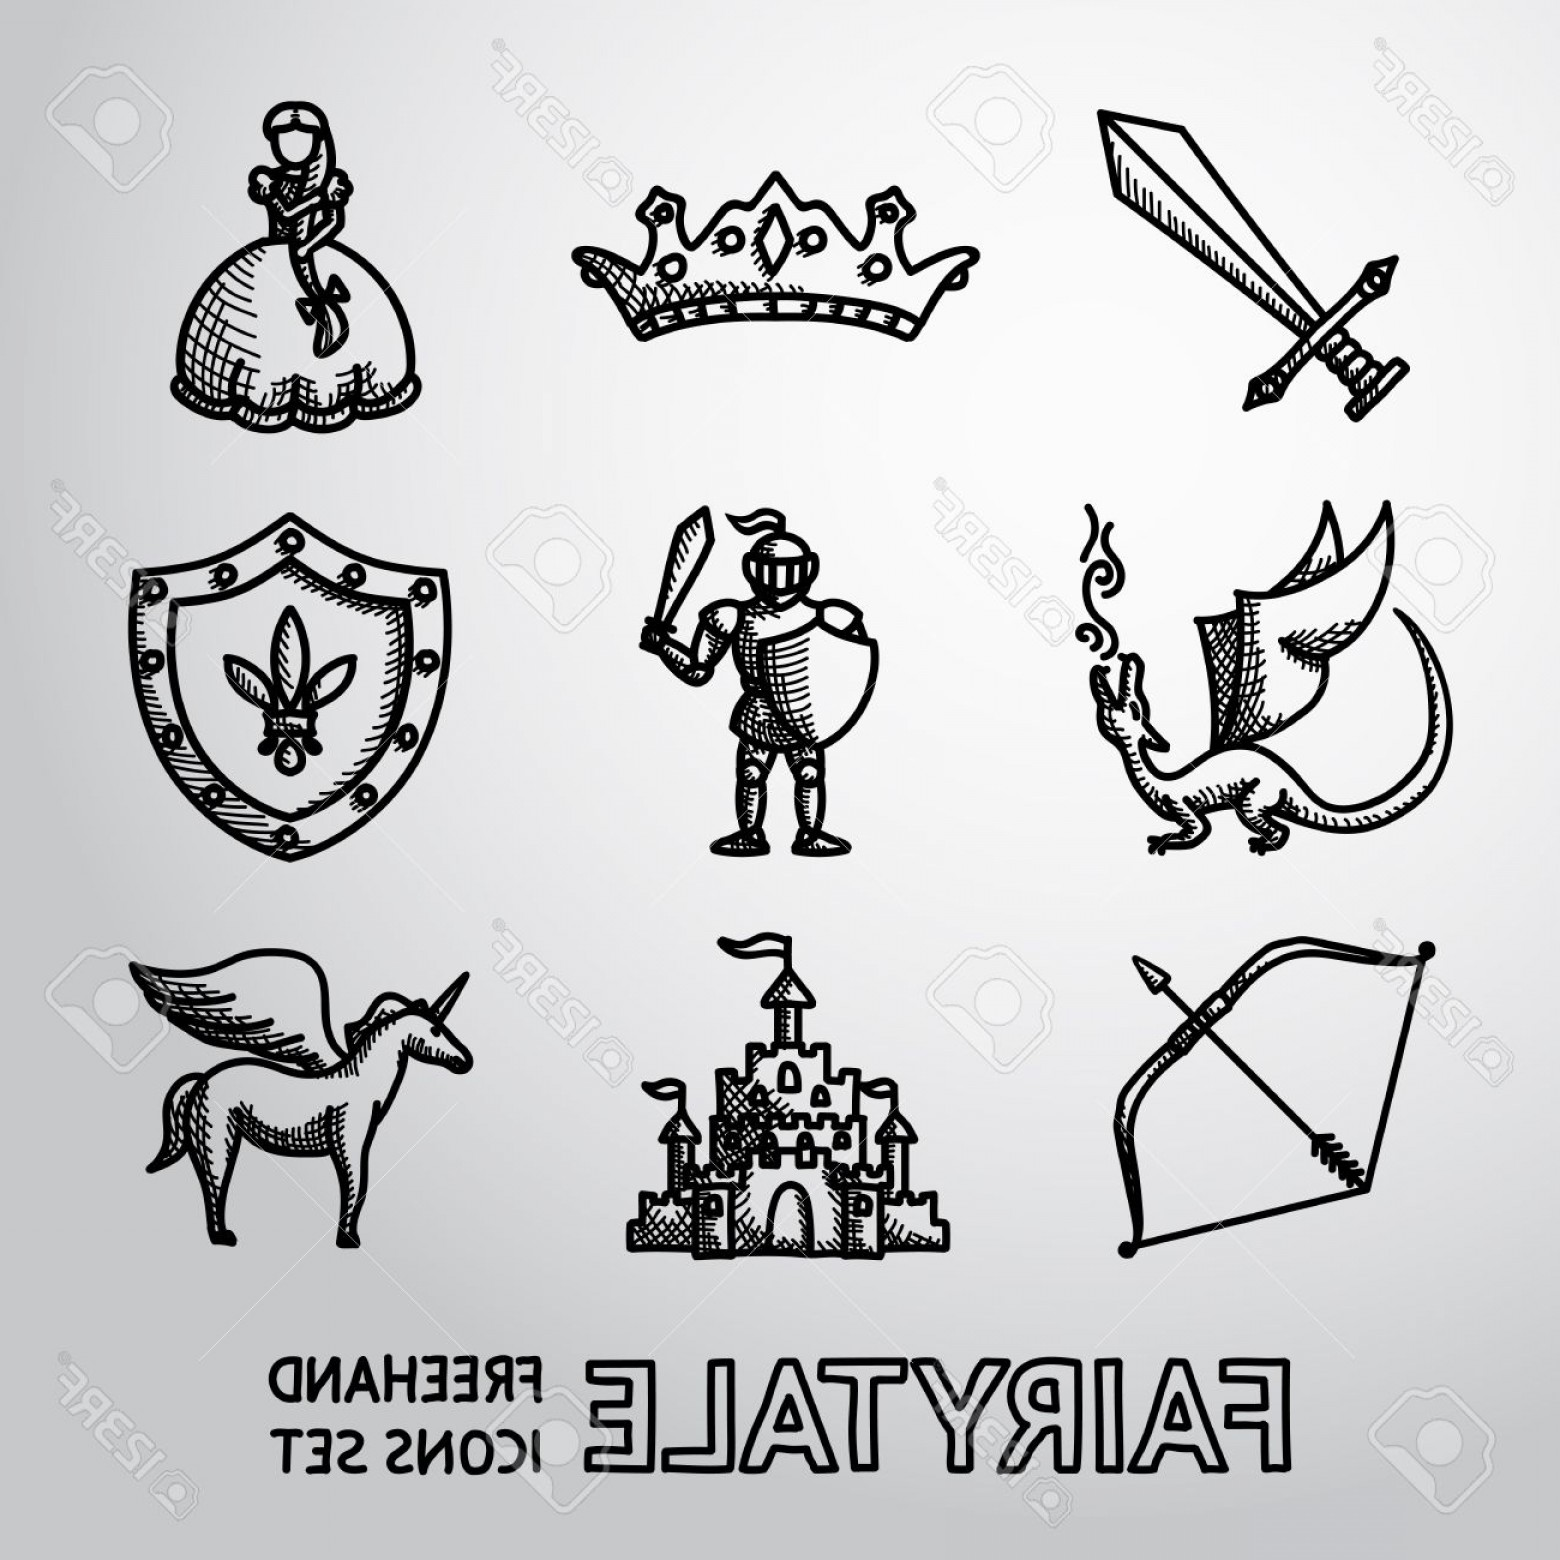 Hand Drawn Vector Fairy Tale: Photostock Vector Set Of Hand Drawn Fairytale Game Icons With Sword And Bow Shield And Knight Dragon Princess Crown Un